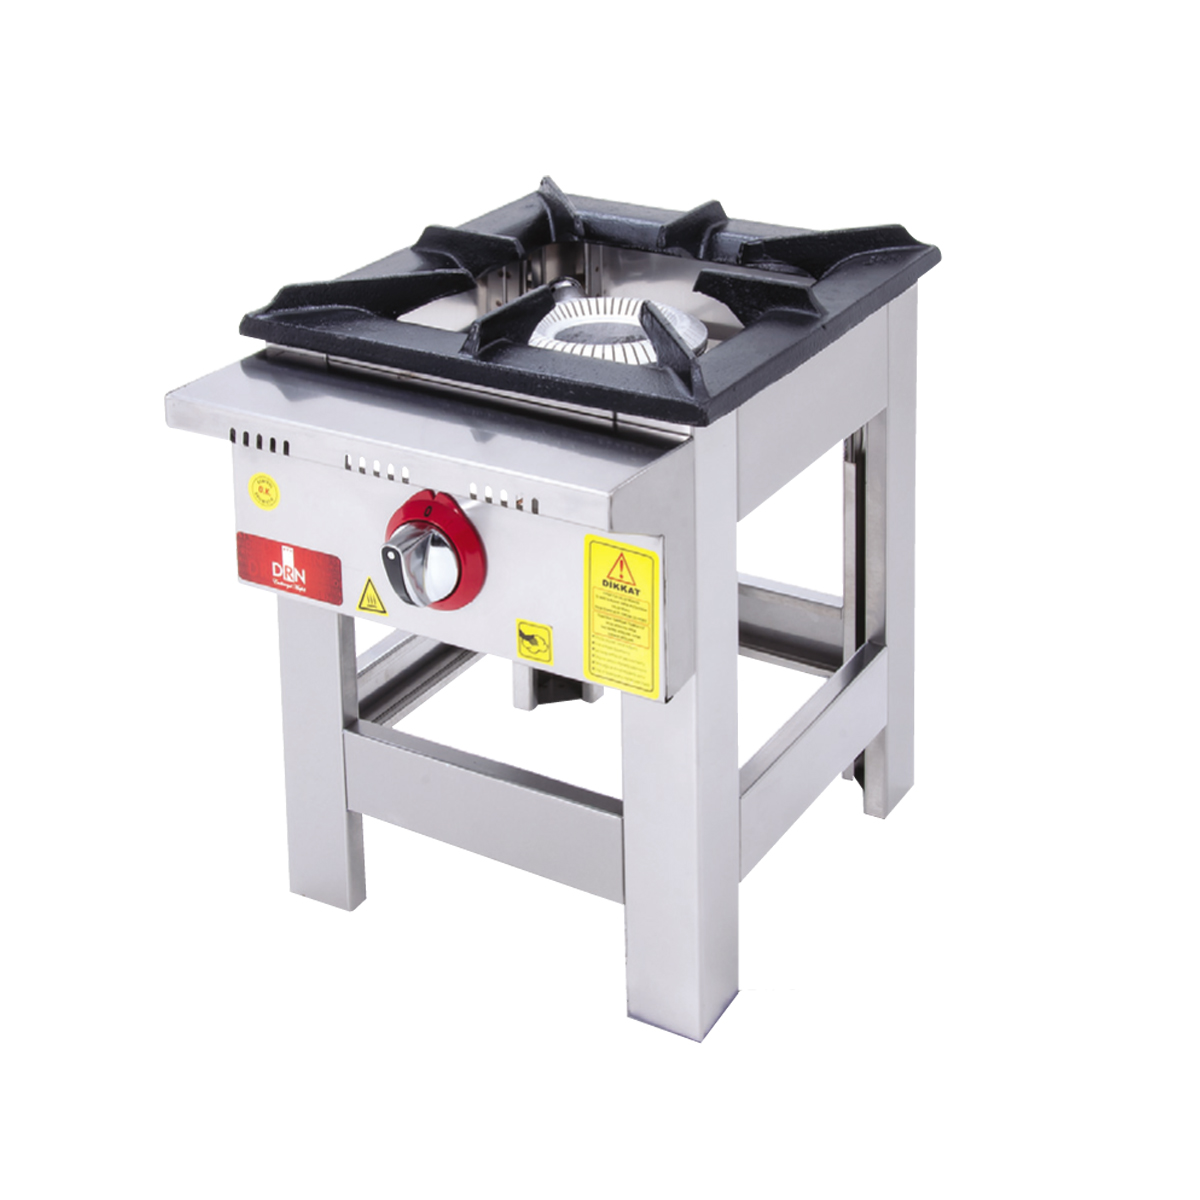 Floor Cooker - Single Ignition - 40x40 - Gas